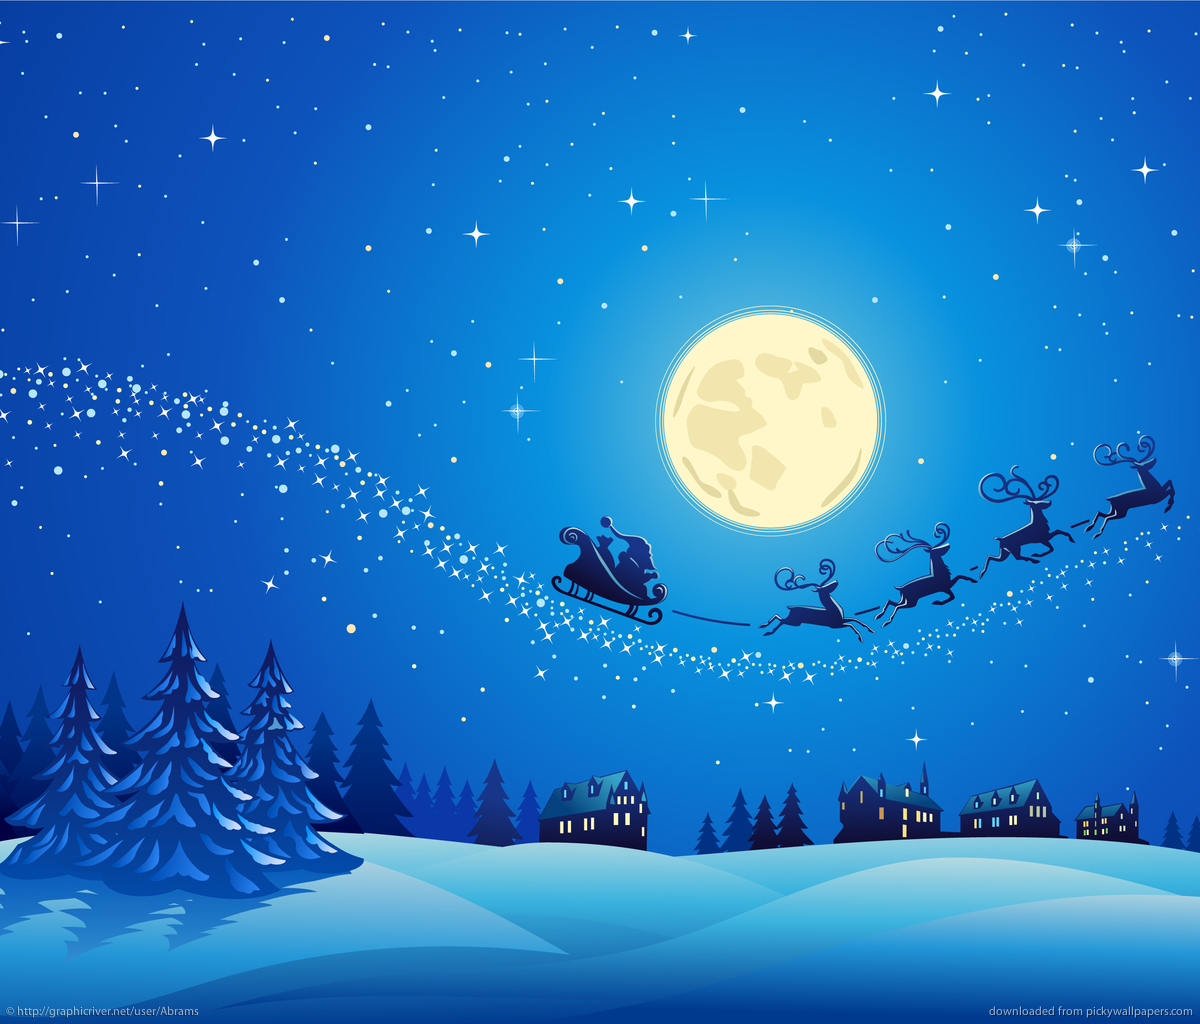 Collection of Christmas Winter Scenes Wallpaper on 1200x1024